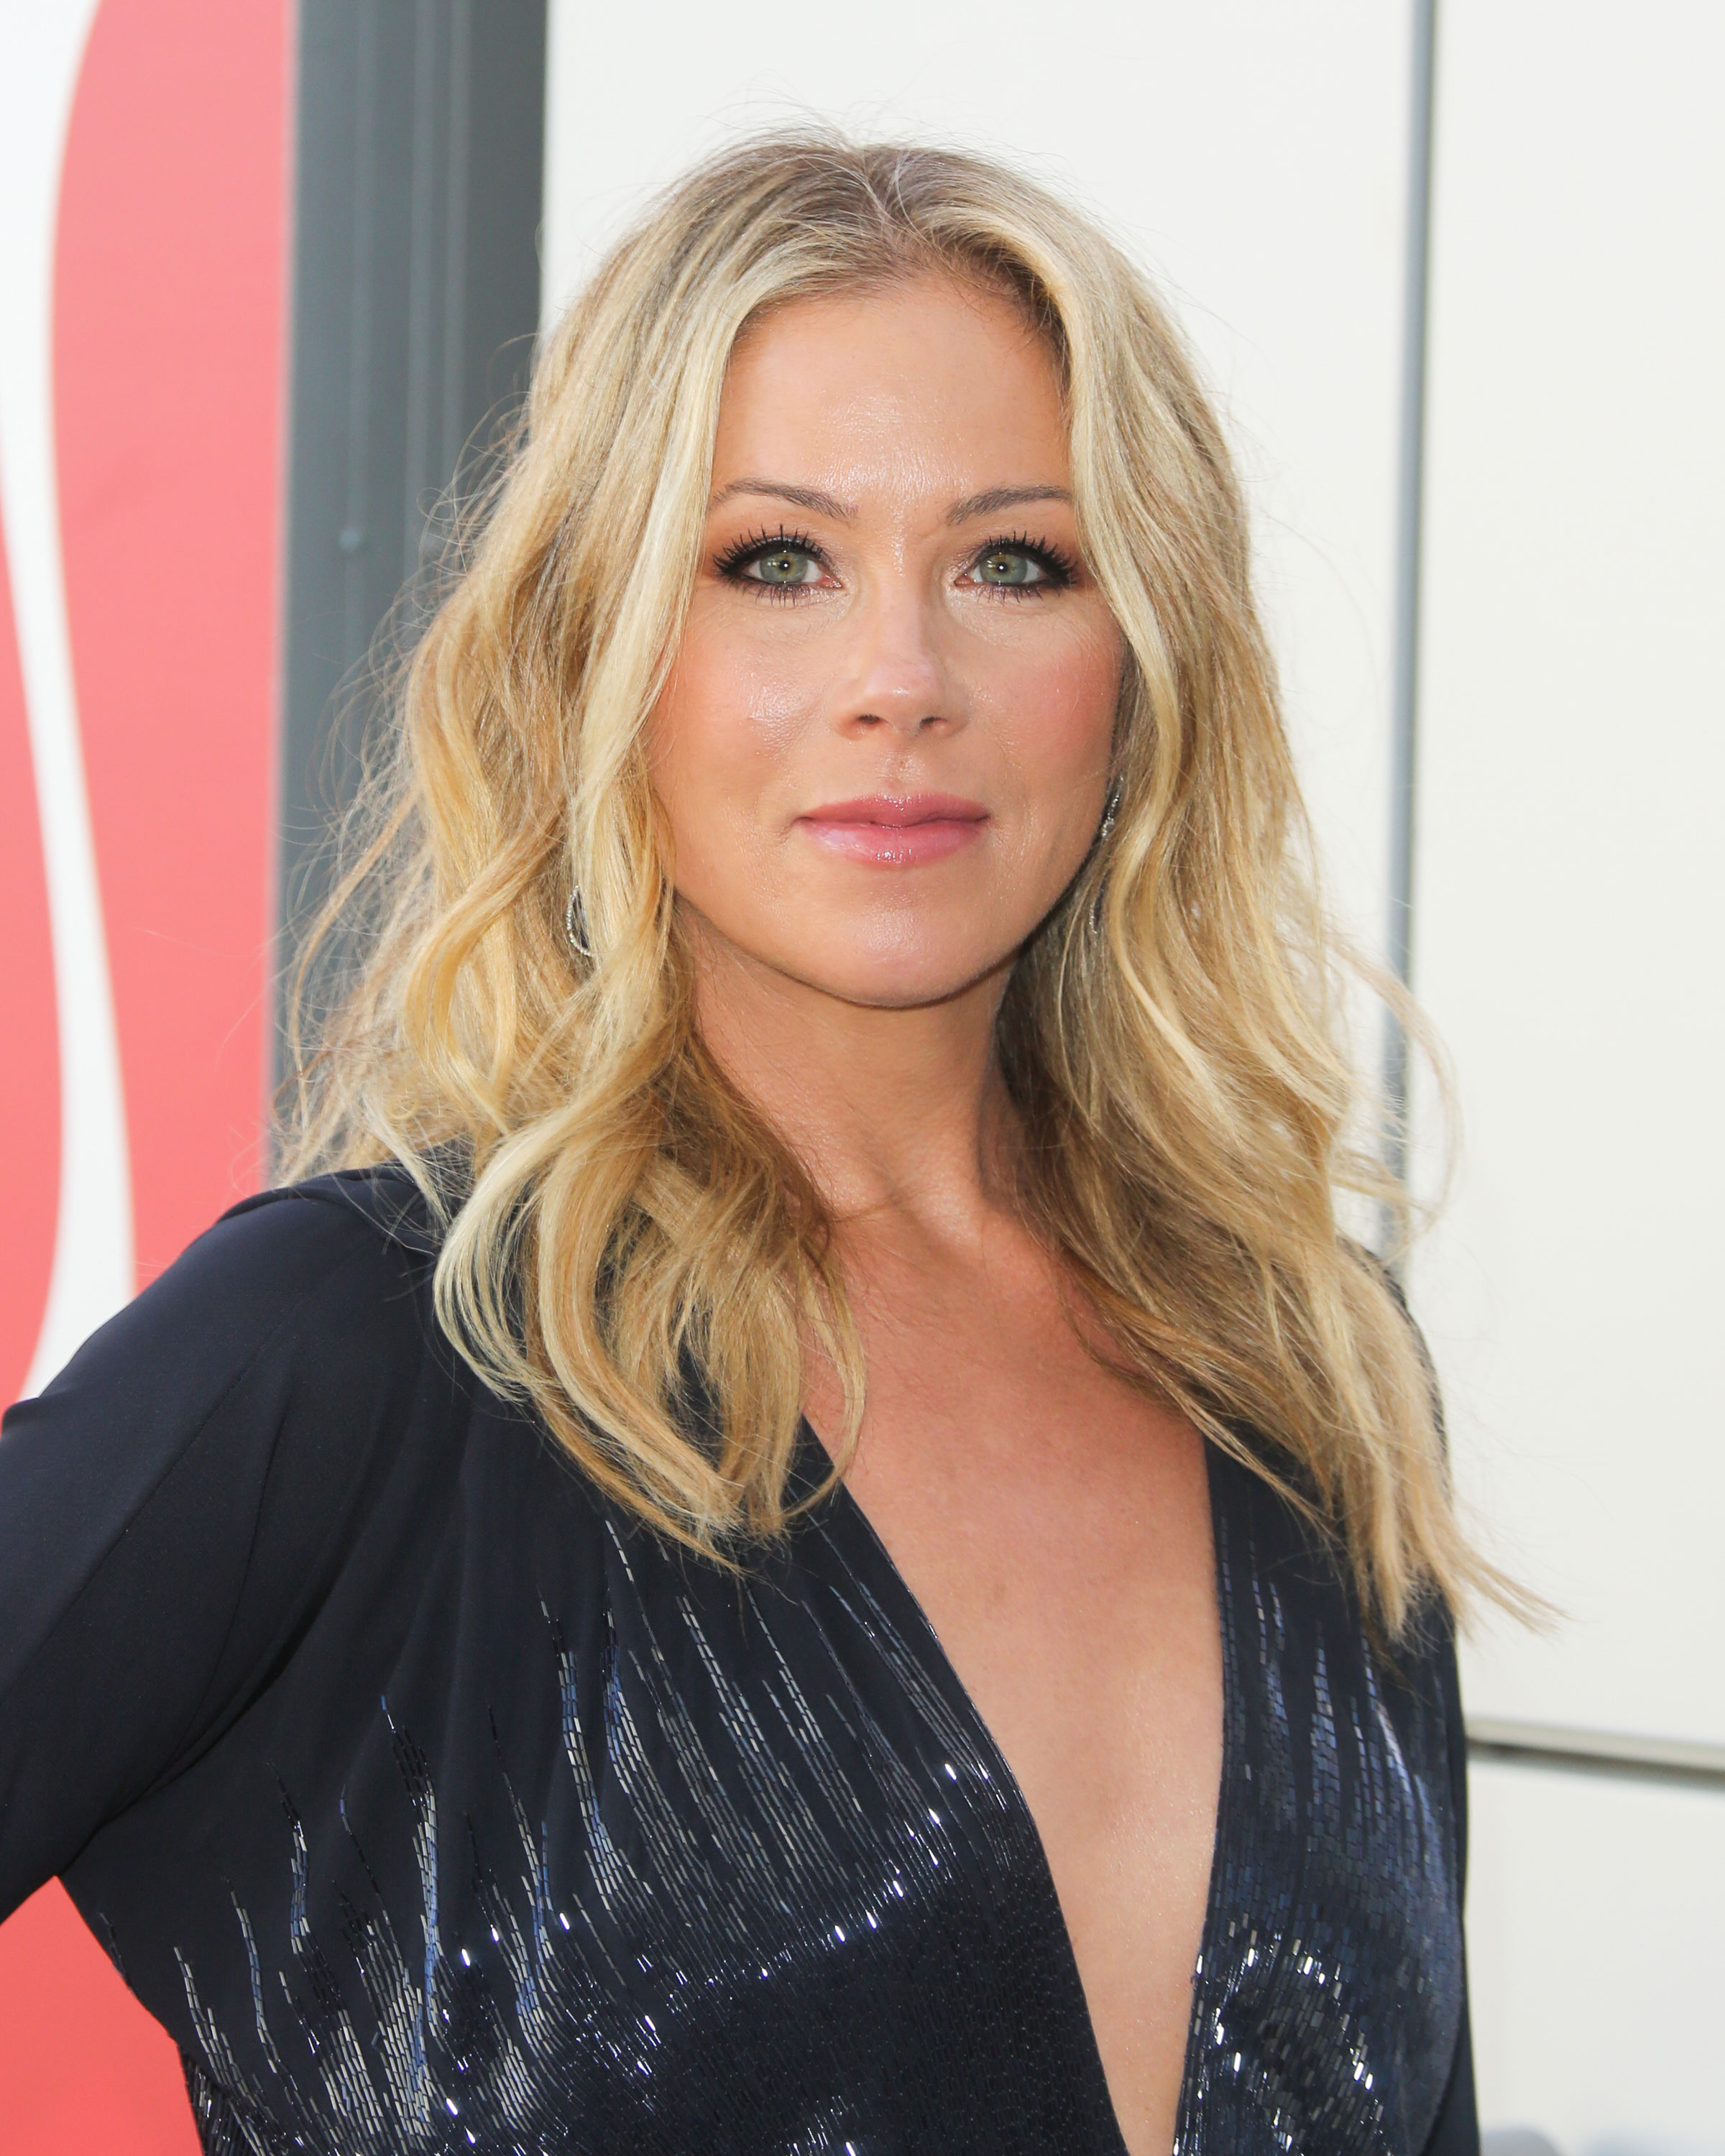 Breast cancer survivor Christina Applegate has ovaries, Fallopian tubes removed